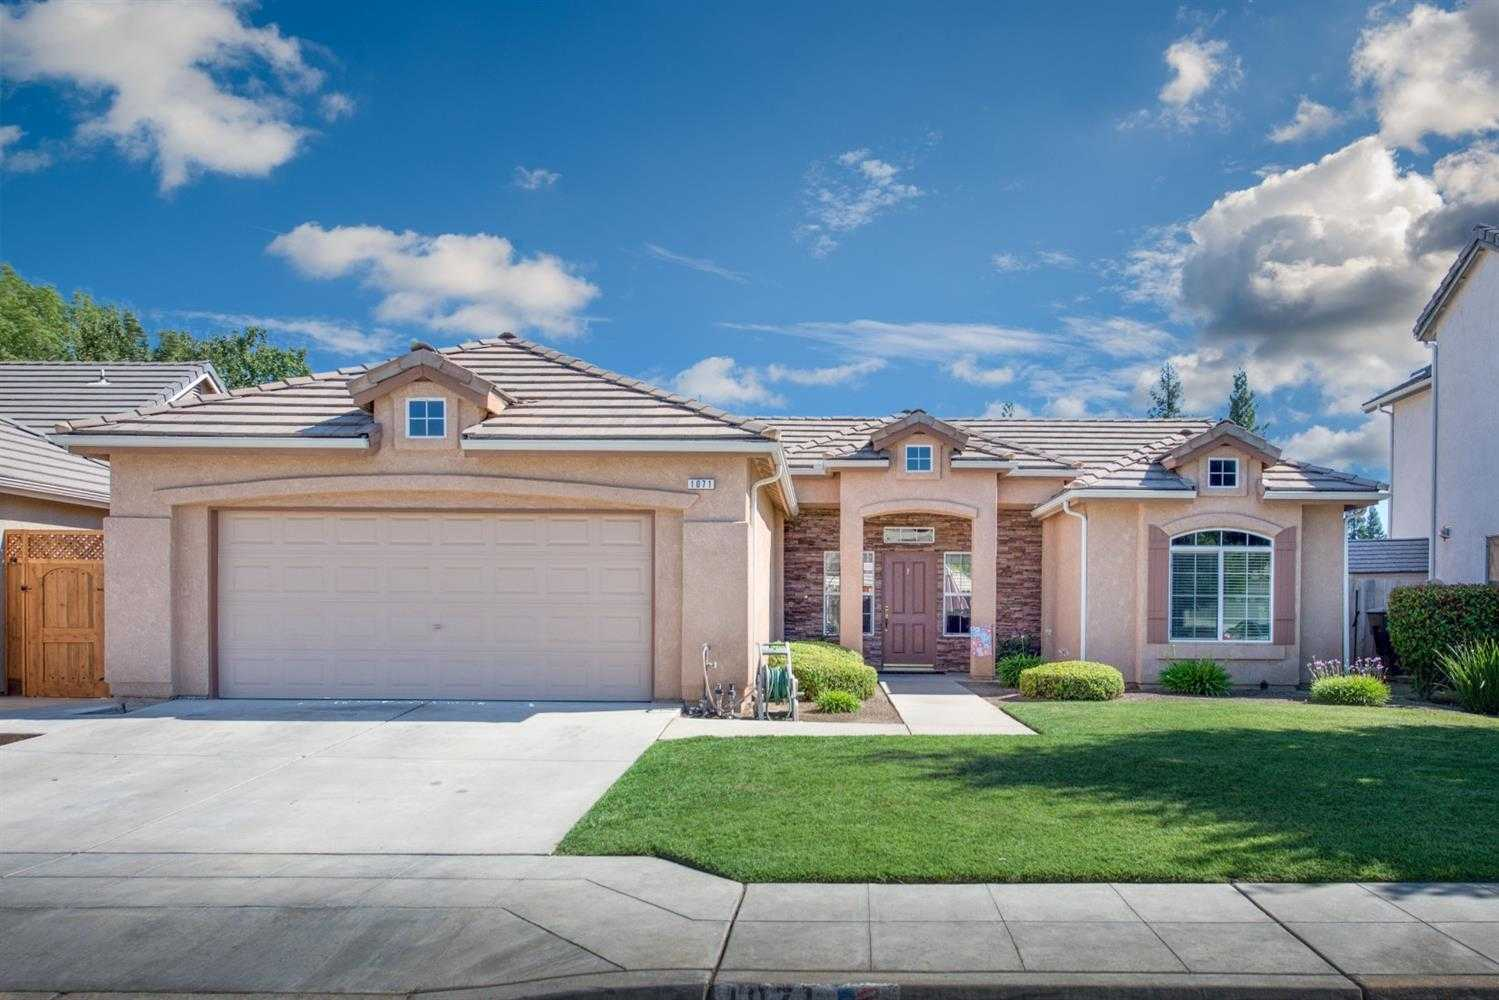 $373,000 - 3Br/2Ba -  for Sale in Fresno